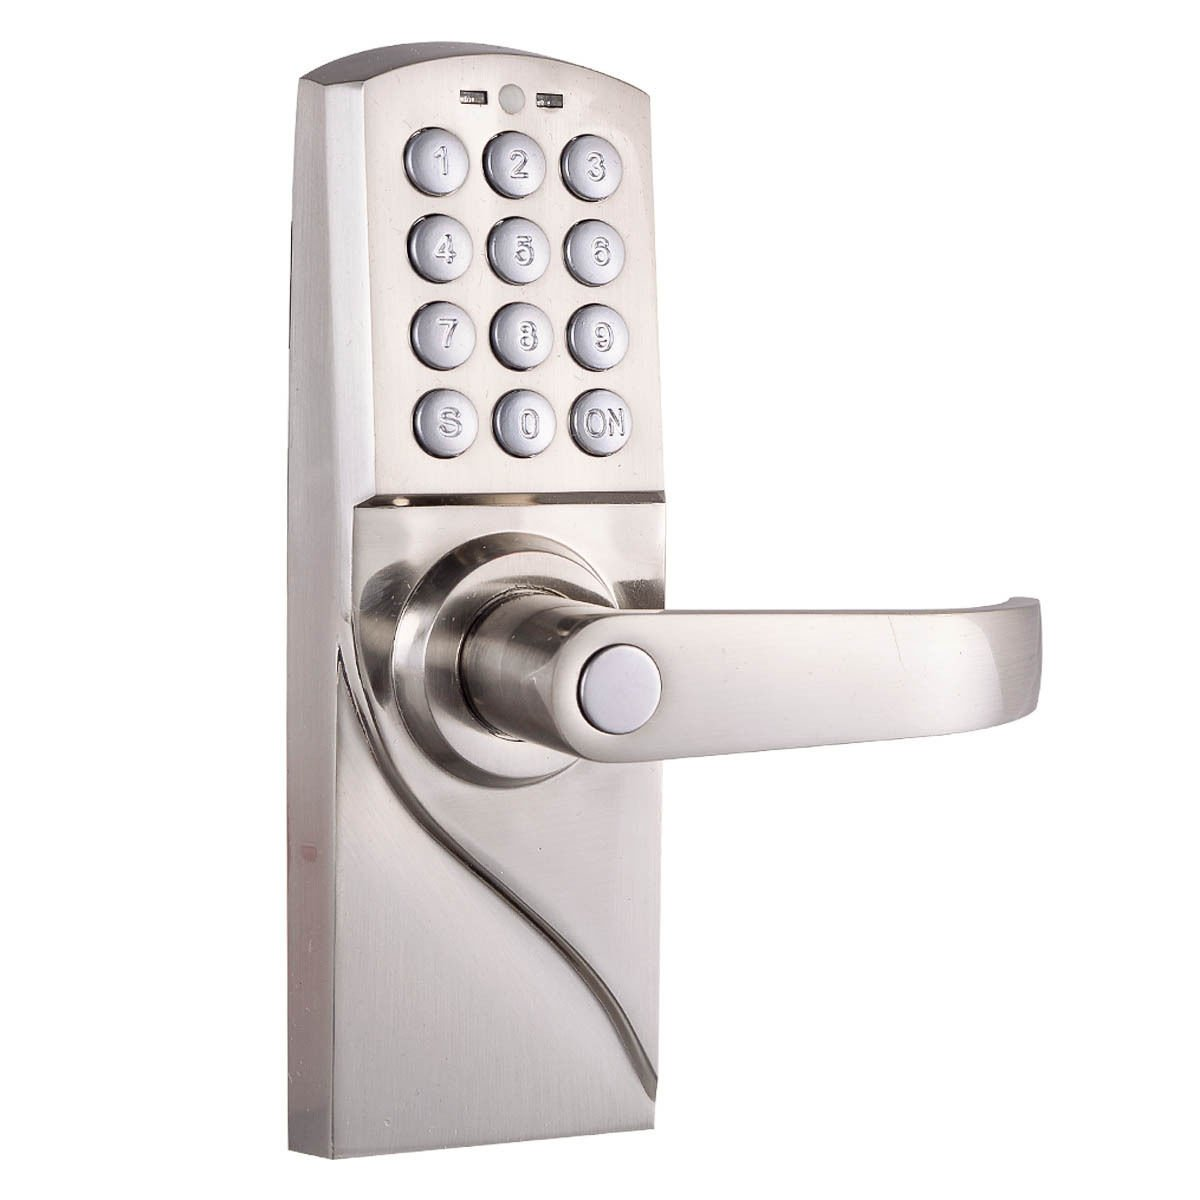 Good Amazon.com : Digital Electronic/Code Keyless Keypad Security Entry Door Lock  Right Handle New : Camera U0026 Photo